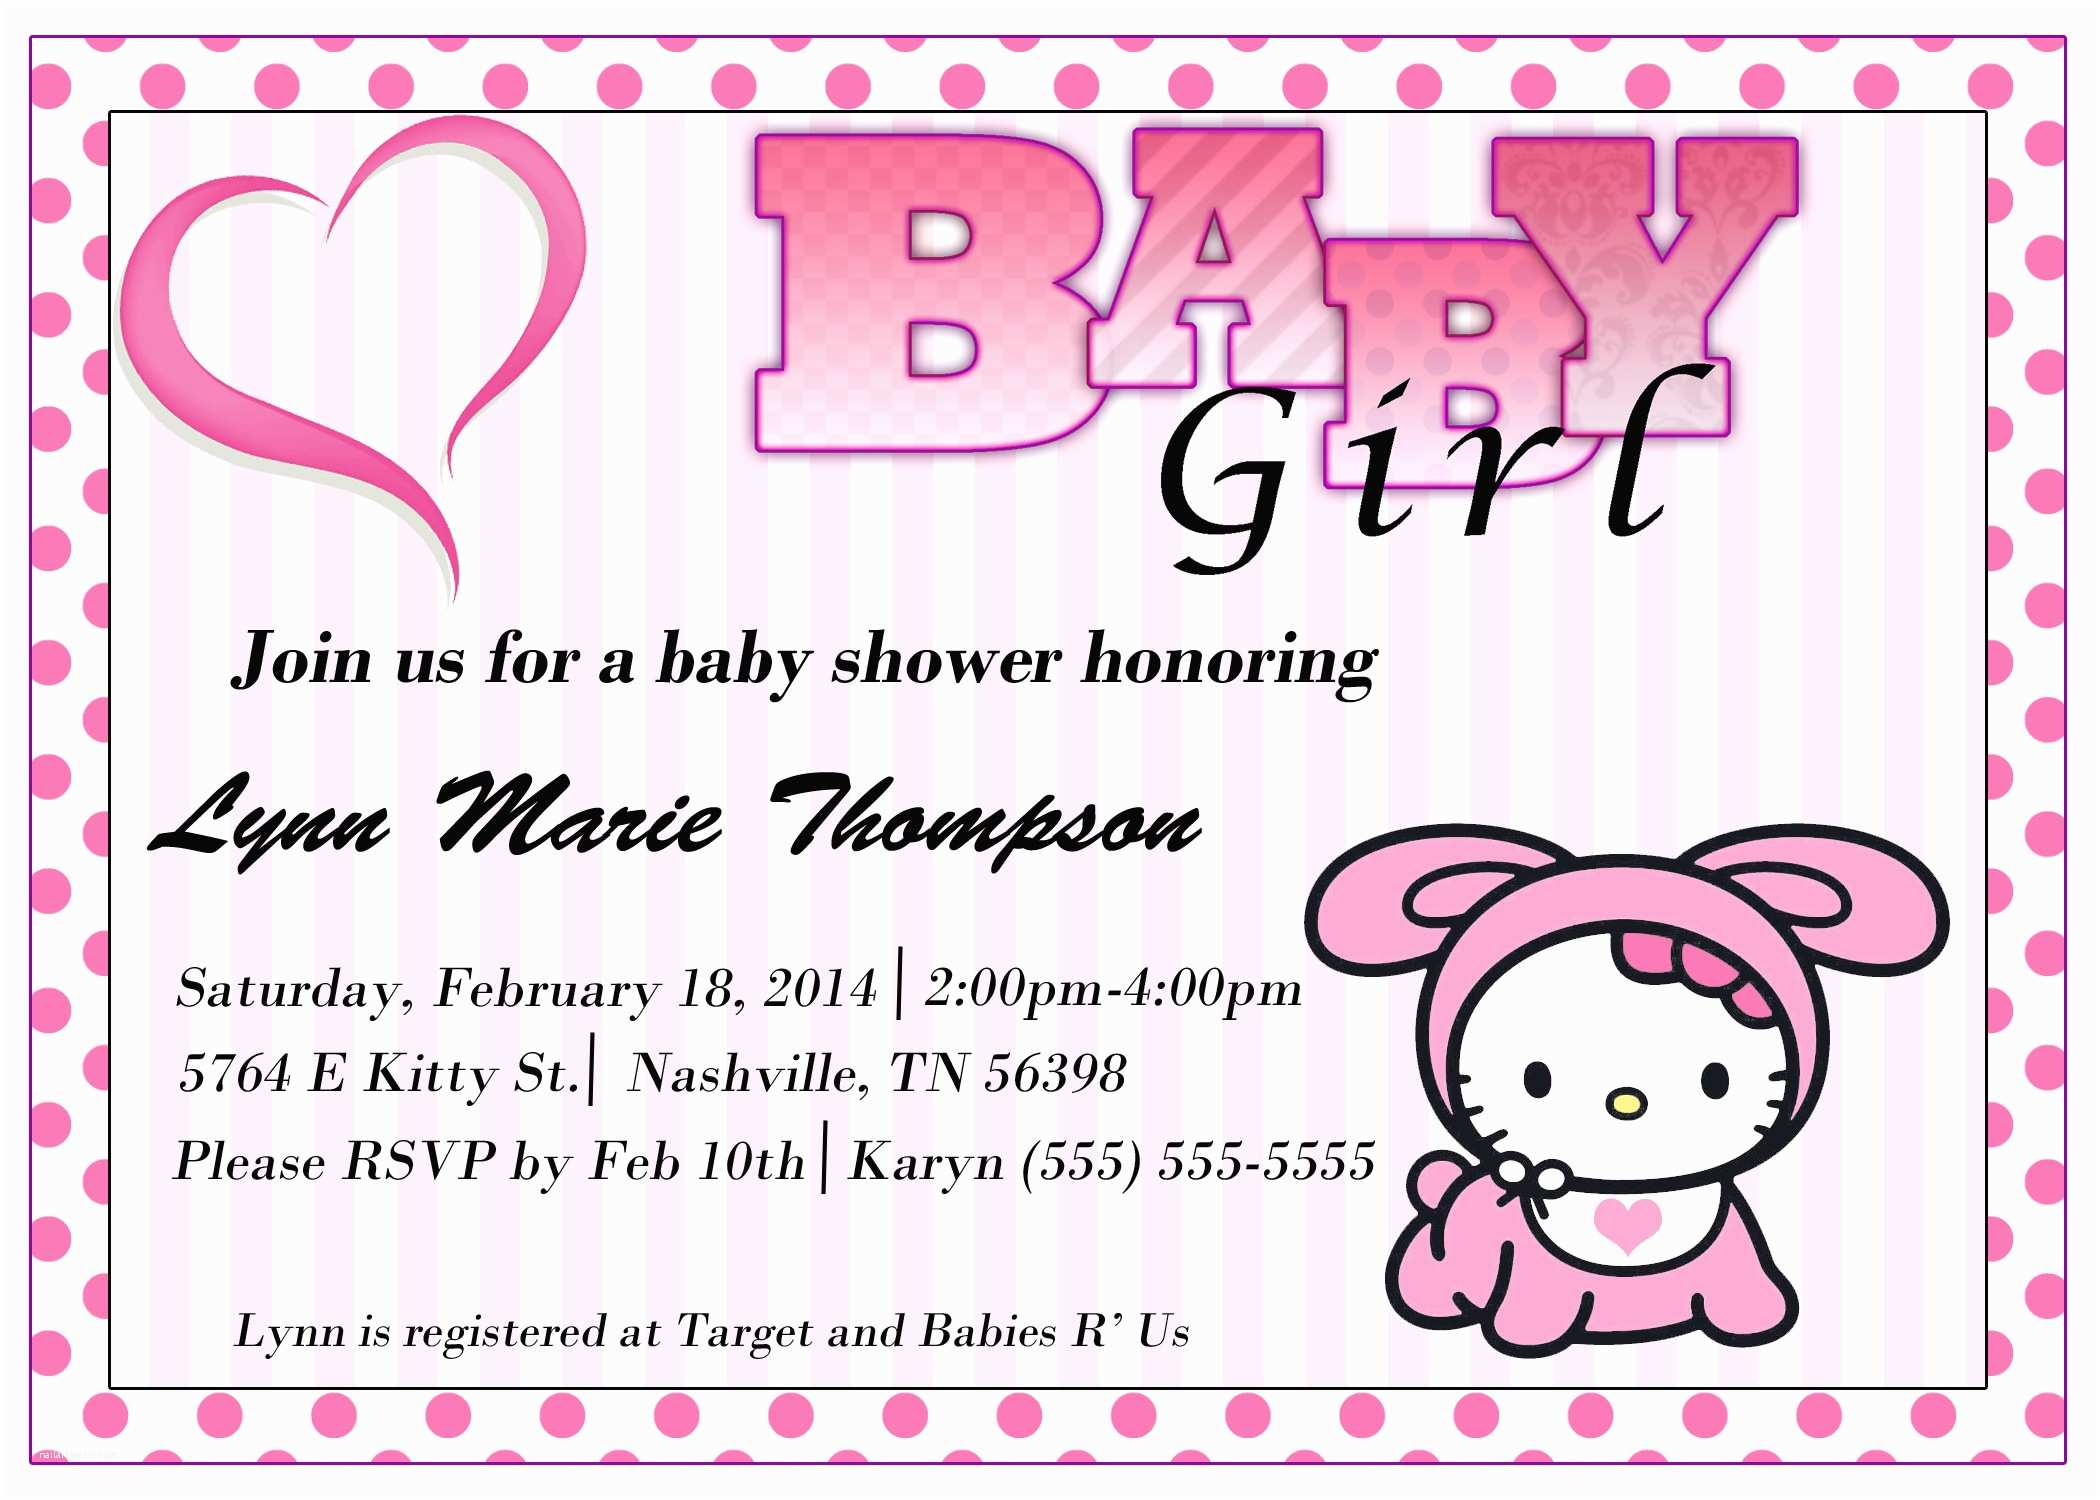 Hobby Lobby Baby Shower Invitations Party Invitations Party City Baby Shower Invitations